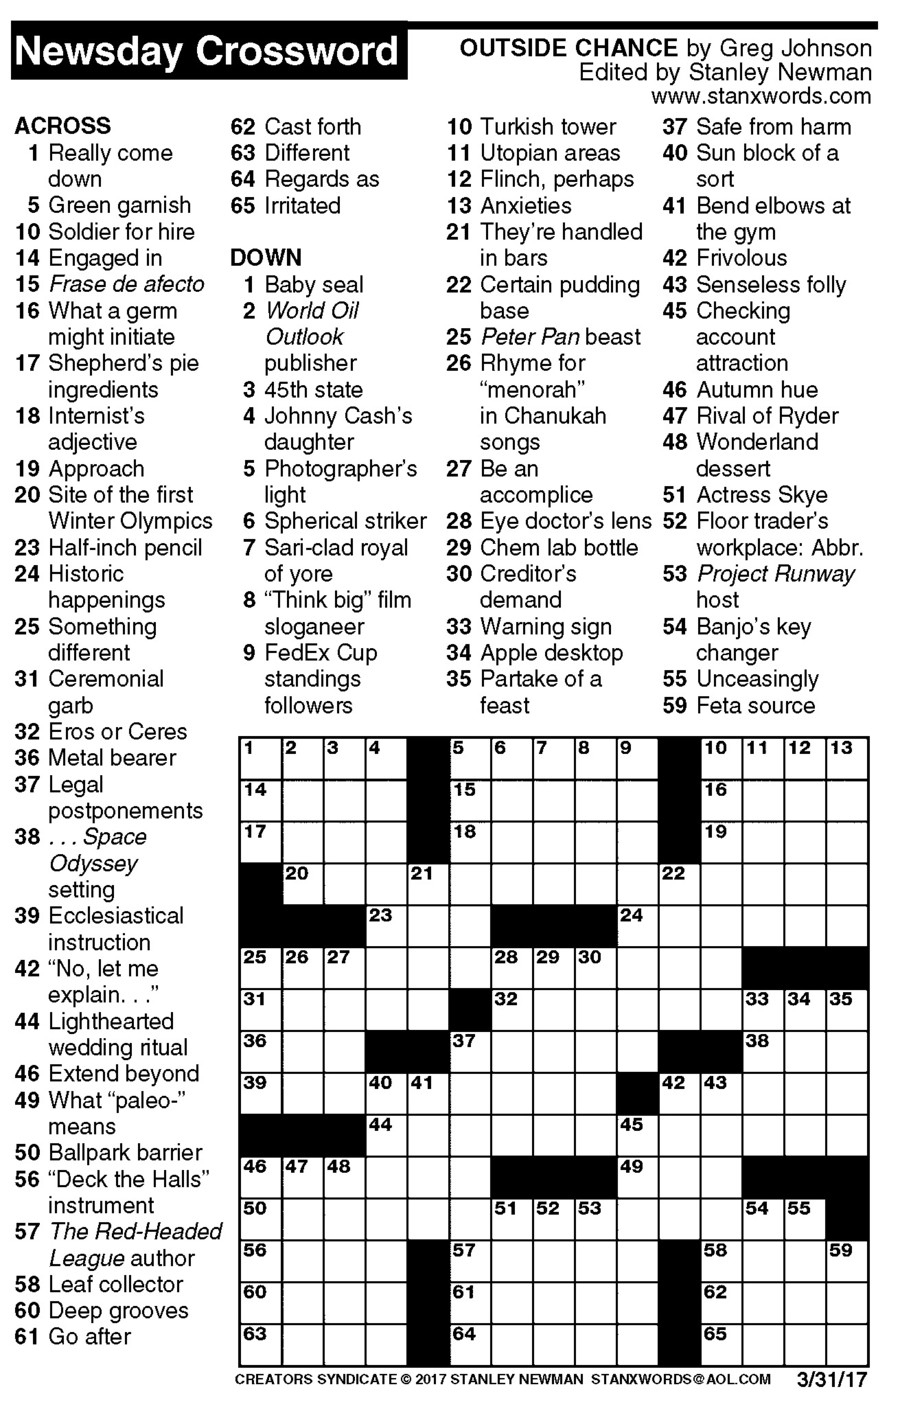 This is an image of Slobbery Daily Crossword Puzzles Printable